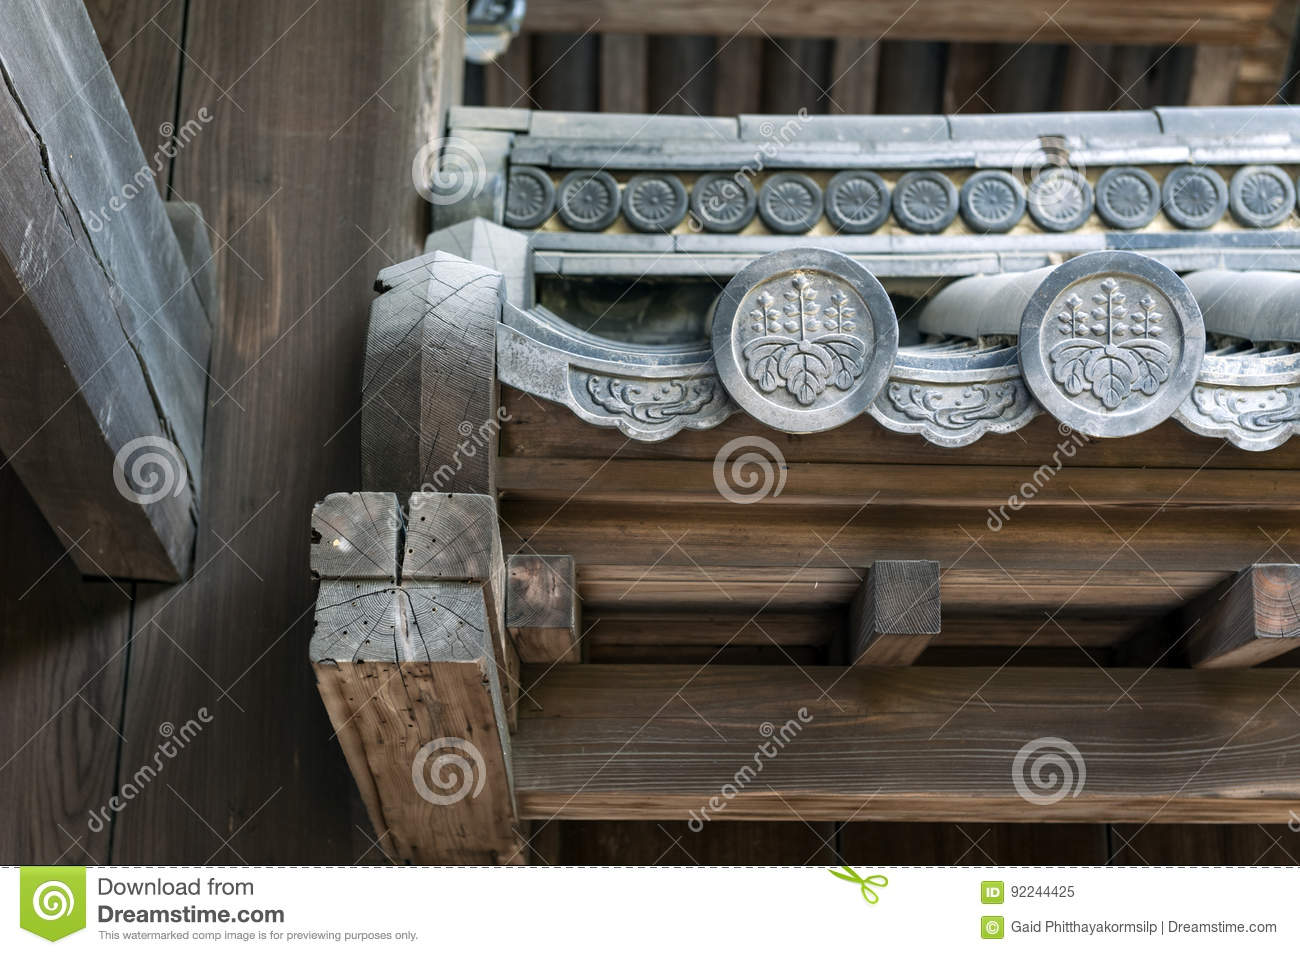 Close up details of Hanagawara or roof tile ornamentation with floral and plant designs in traditional Japanese architecture